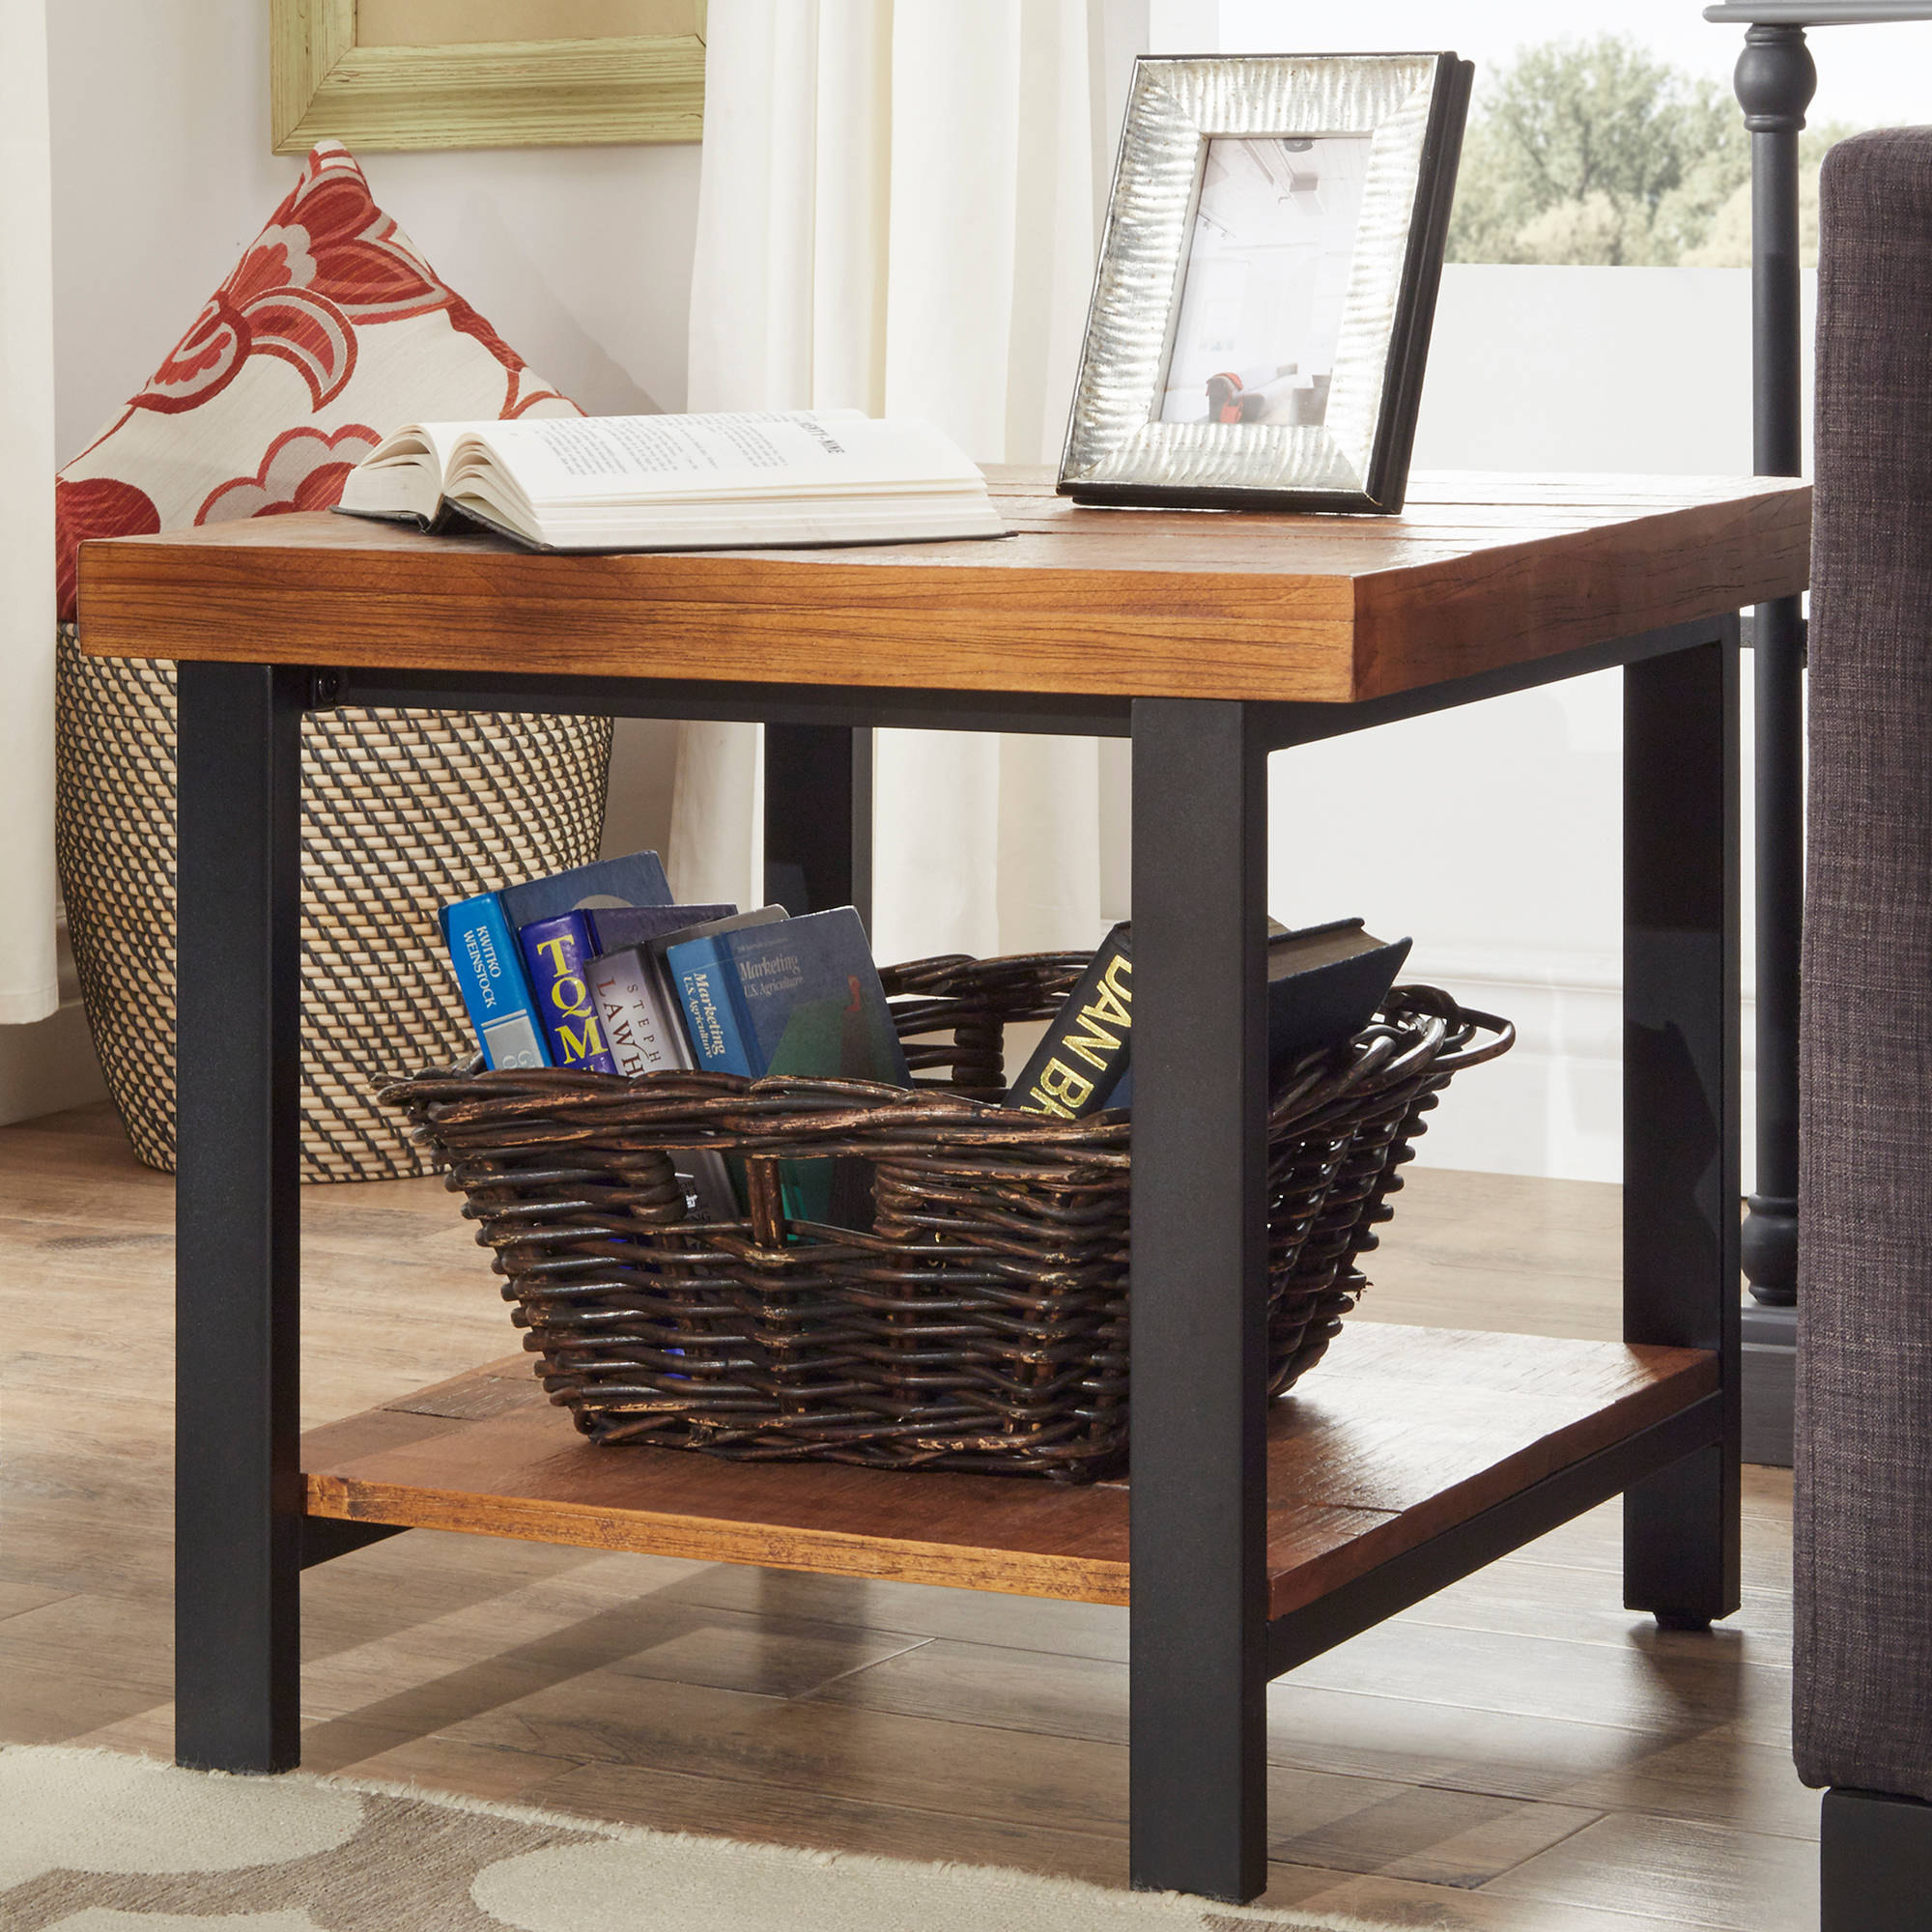 Weston Home Hebron End Table, Multiple Colors